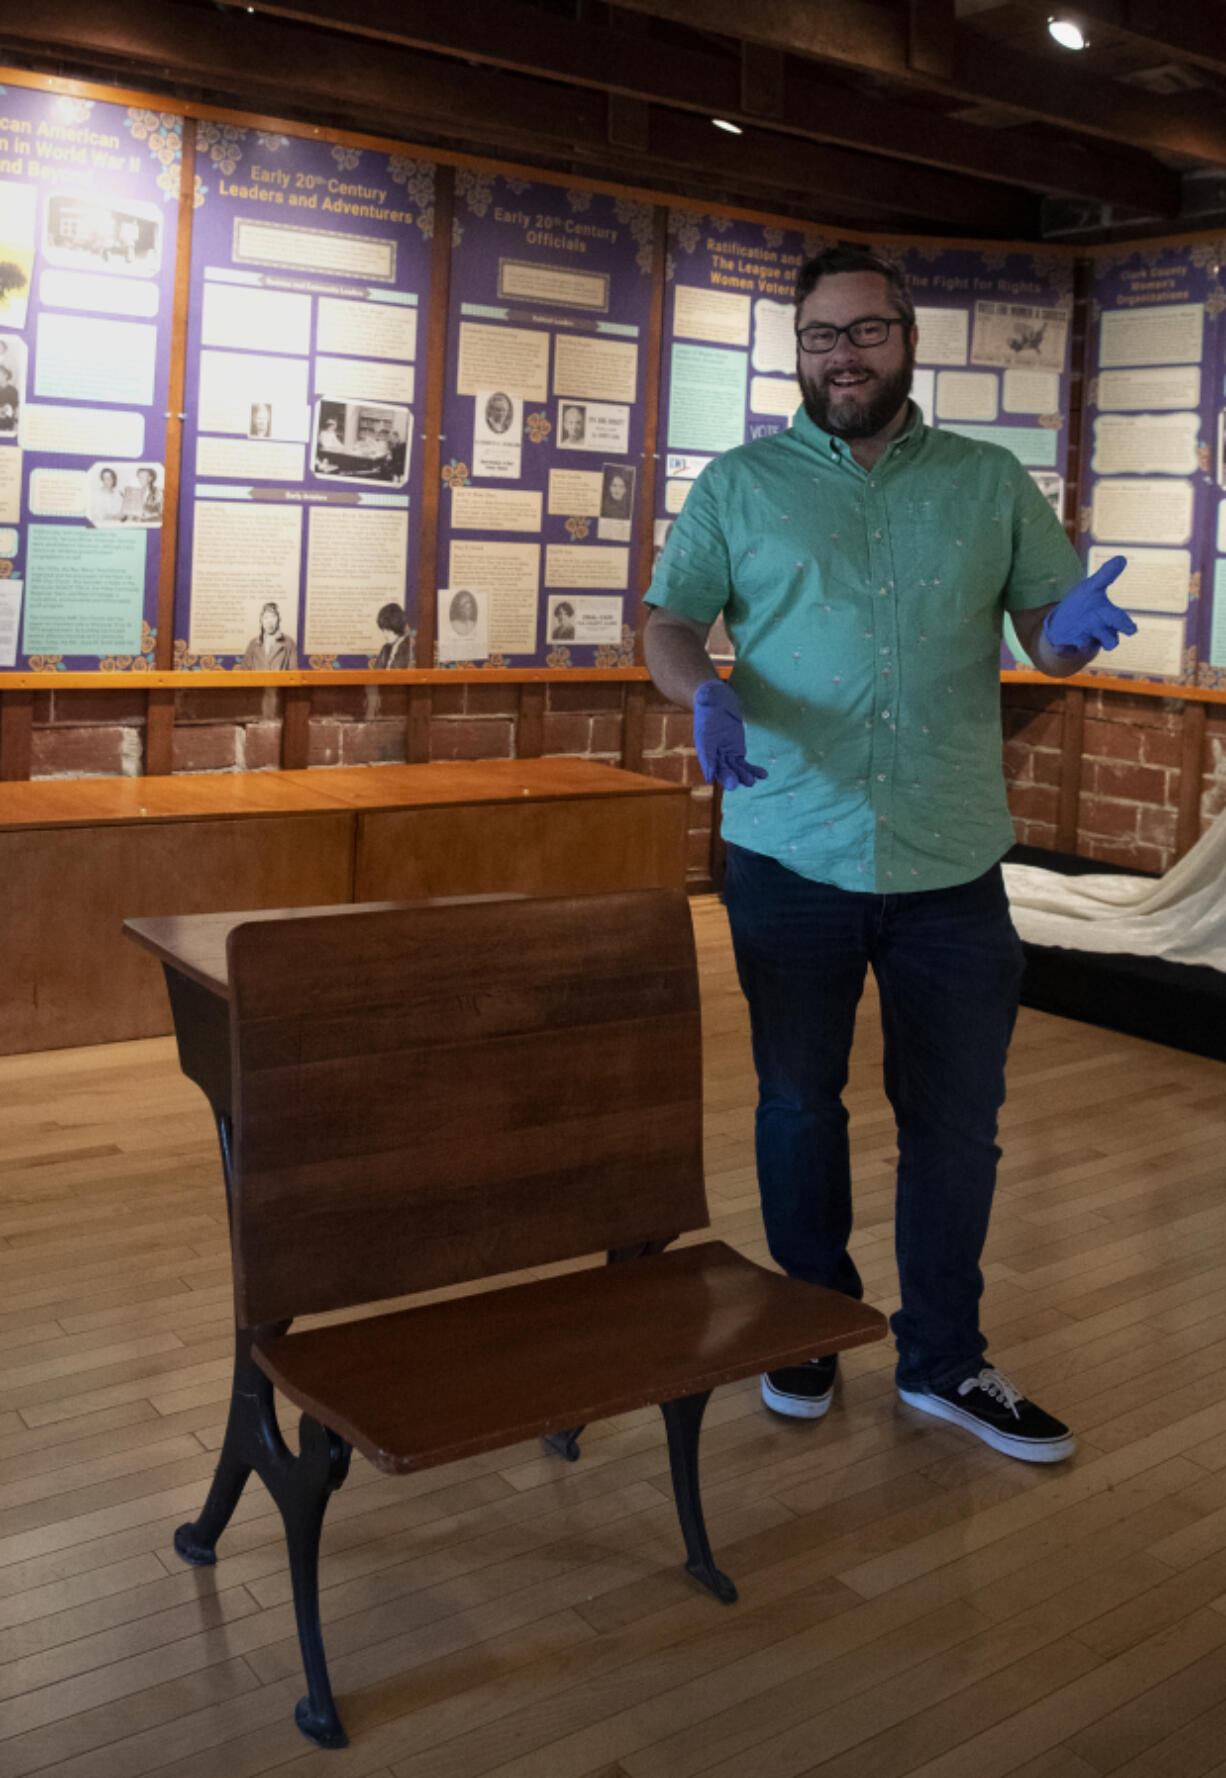 Clark County Historical Museum Executive Director Bradley Richardson talks about the history of this desk from the Columbian School and why the museum took it into its collection.